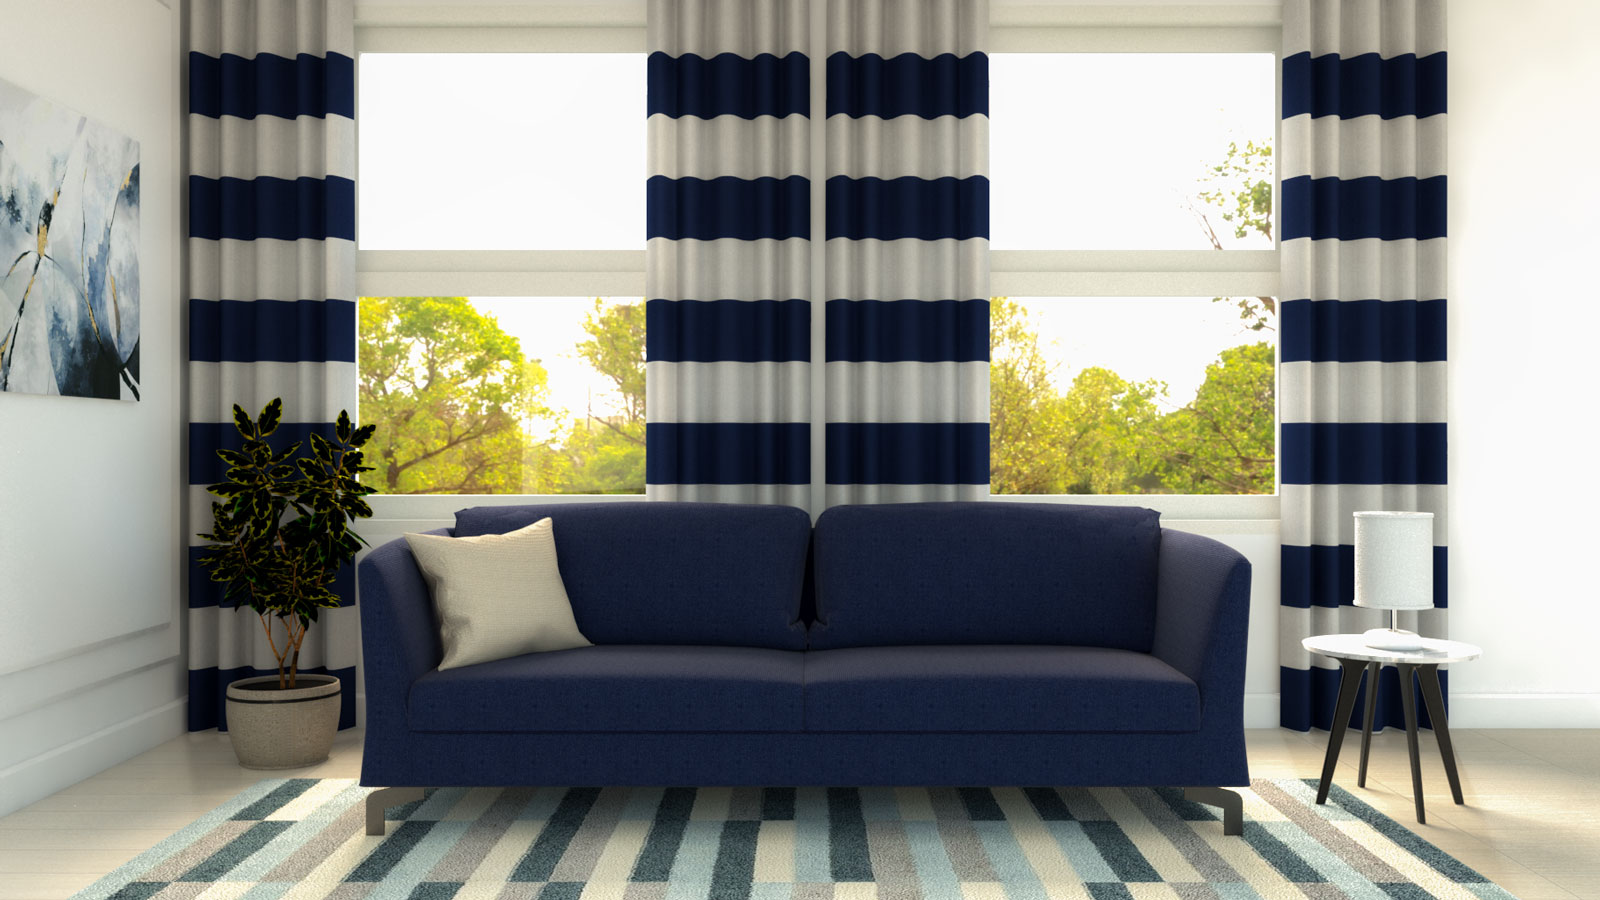 White and blue curtains with navy blue couch